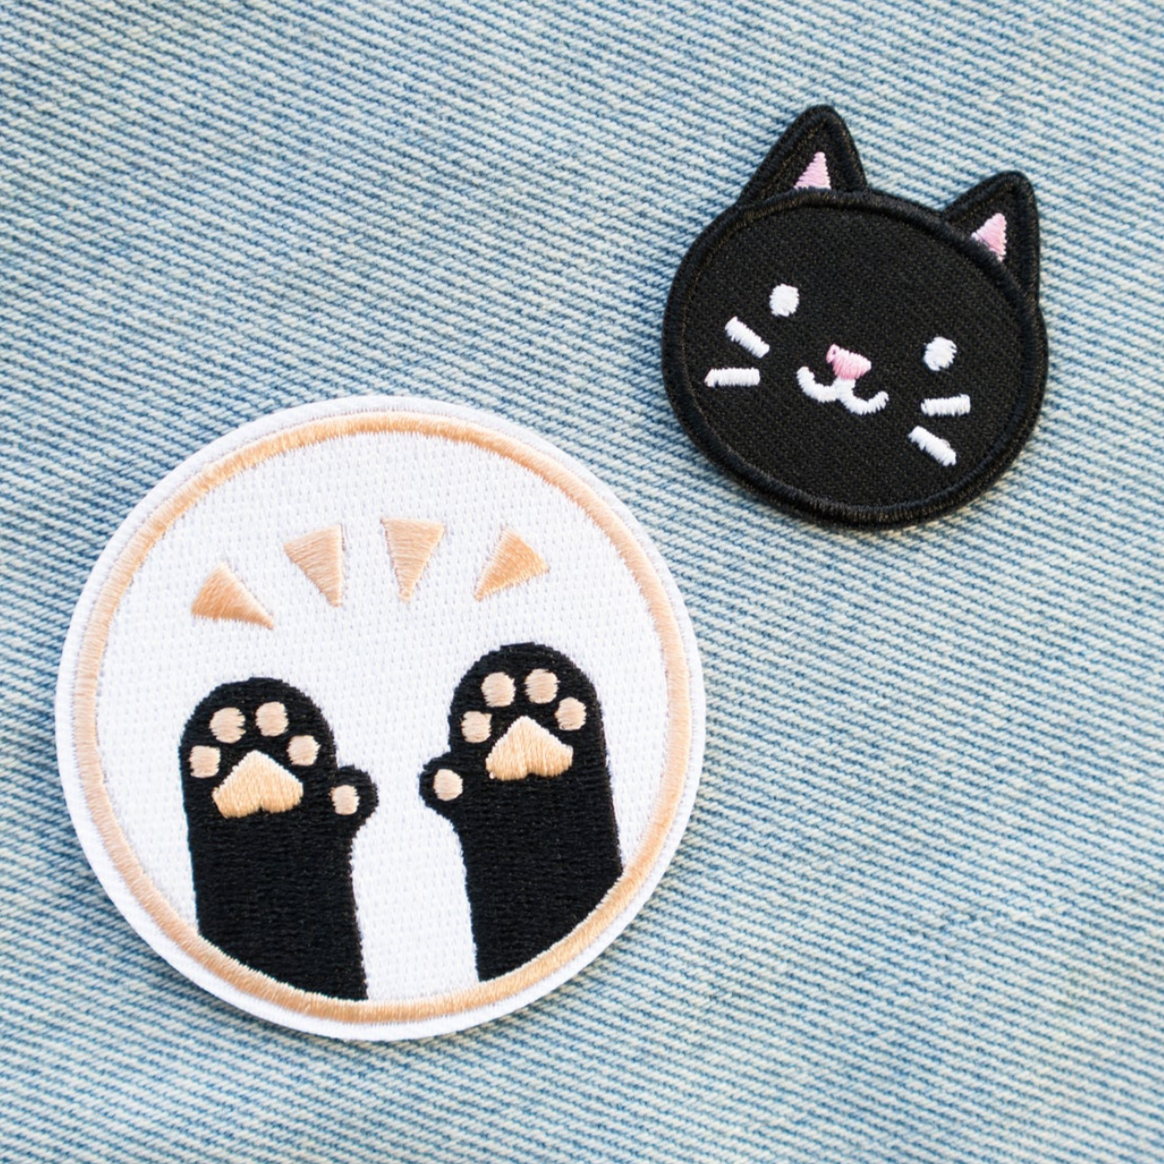 """Pawsome"" - Embroidered Patch"